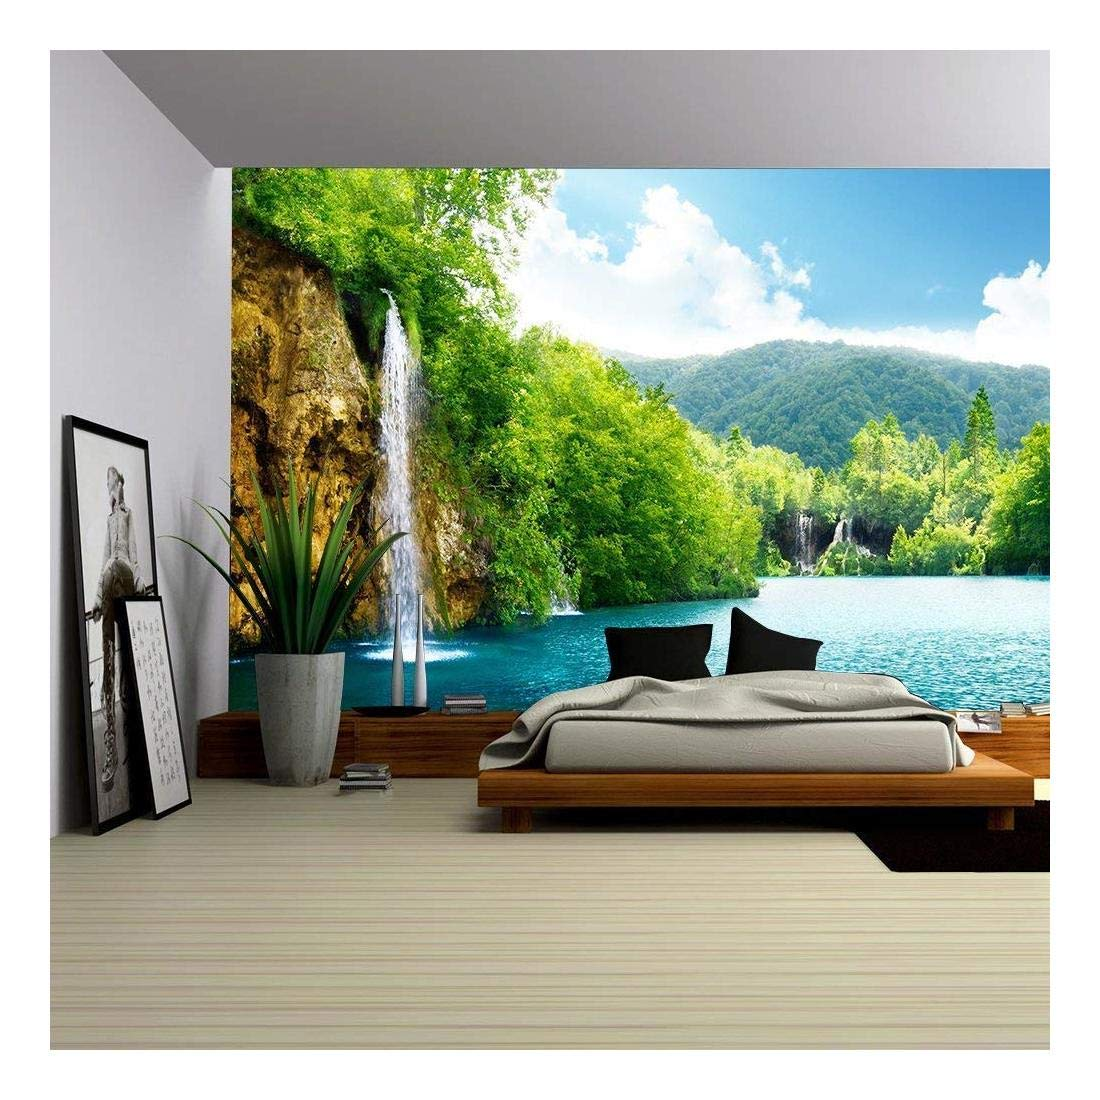 wall26 - Waterfall in Deep Forest of Croatia - Removable Wall Mural | Self-Adhesive Large Wallpaper - 66x96 inches by wall26